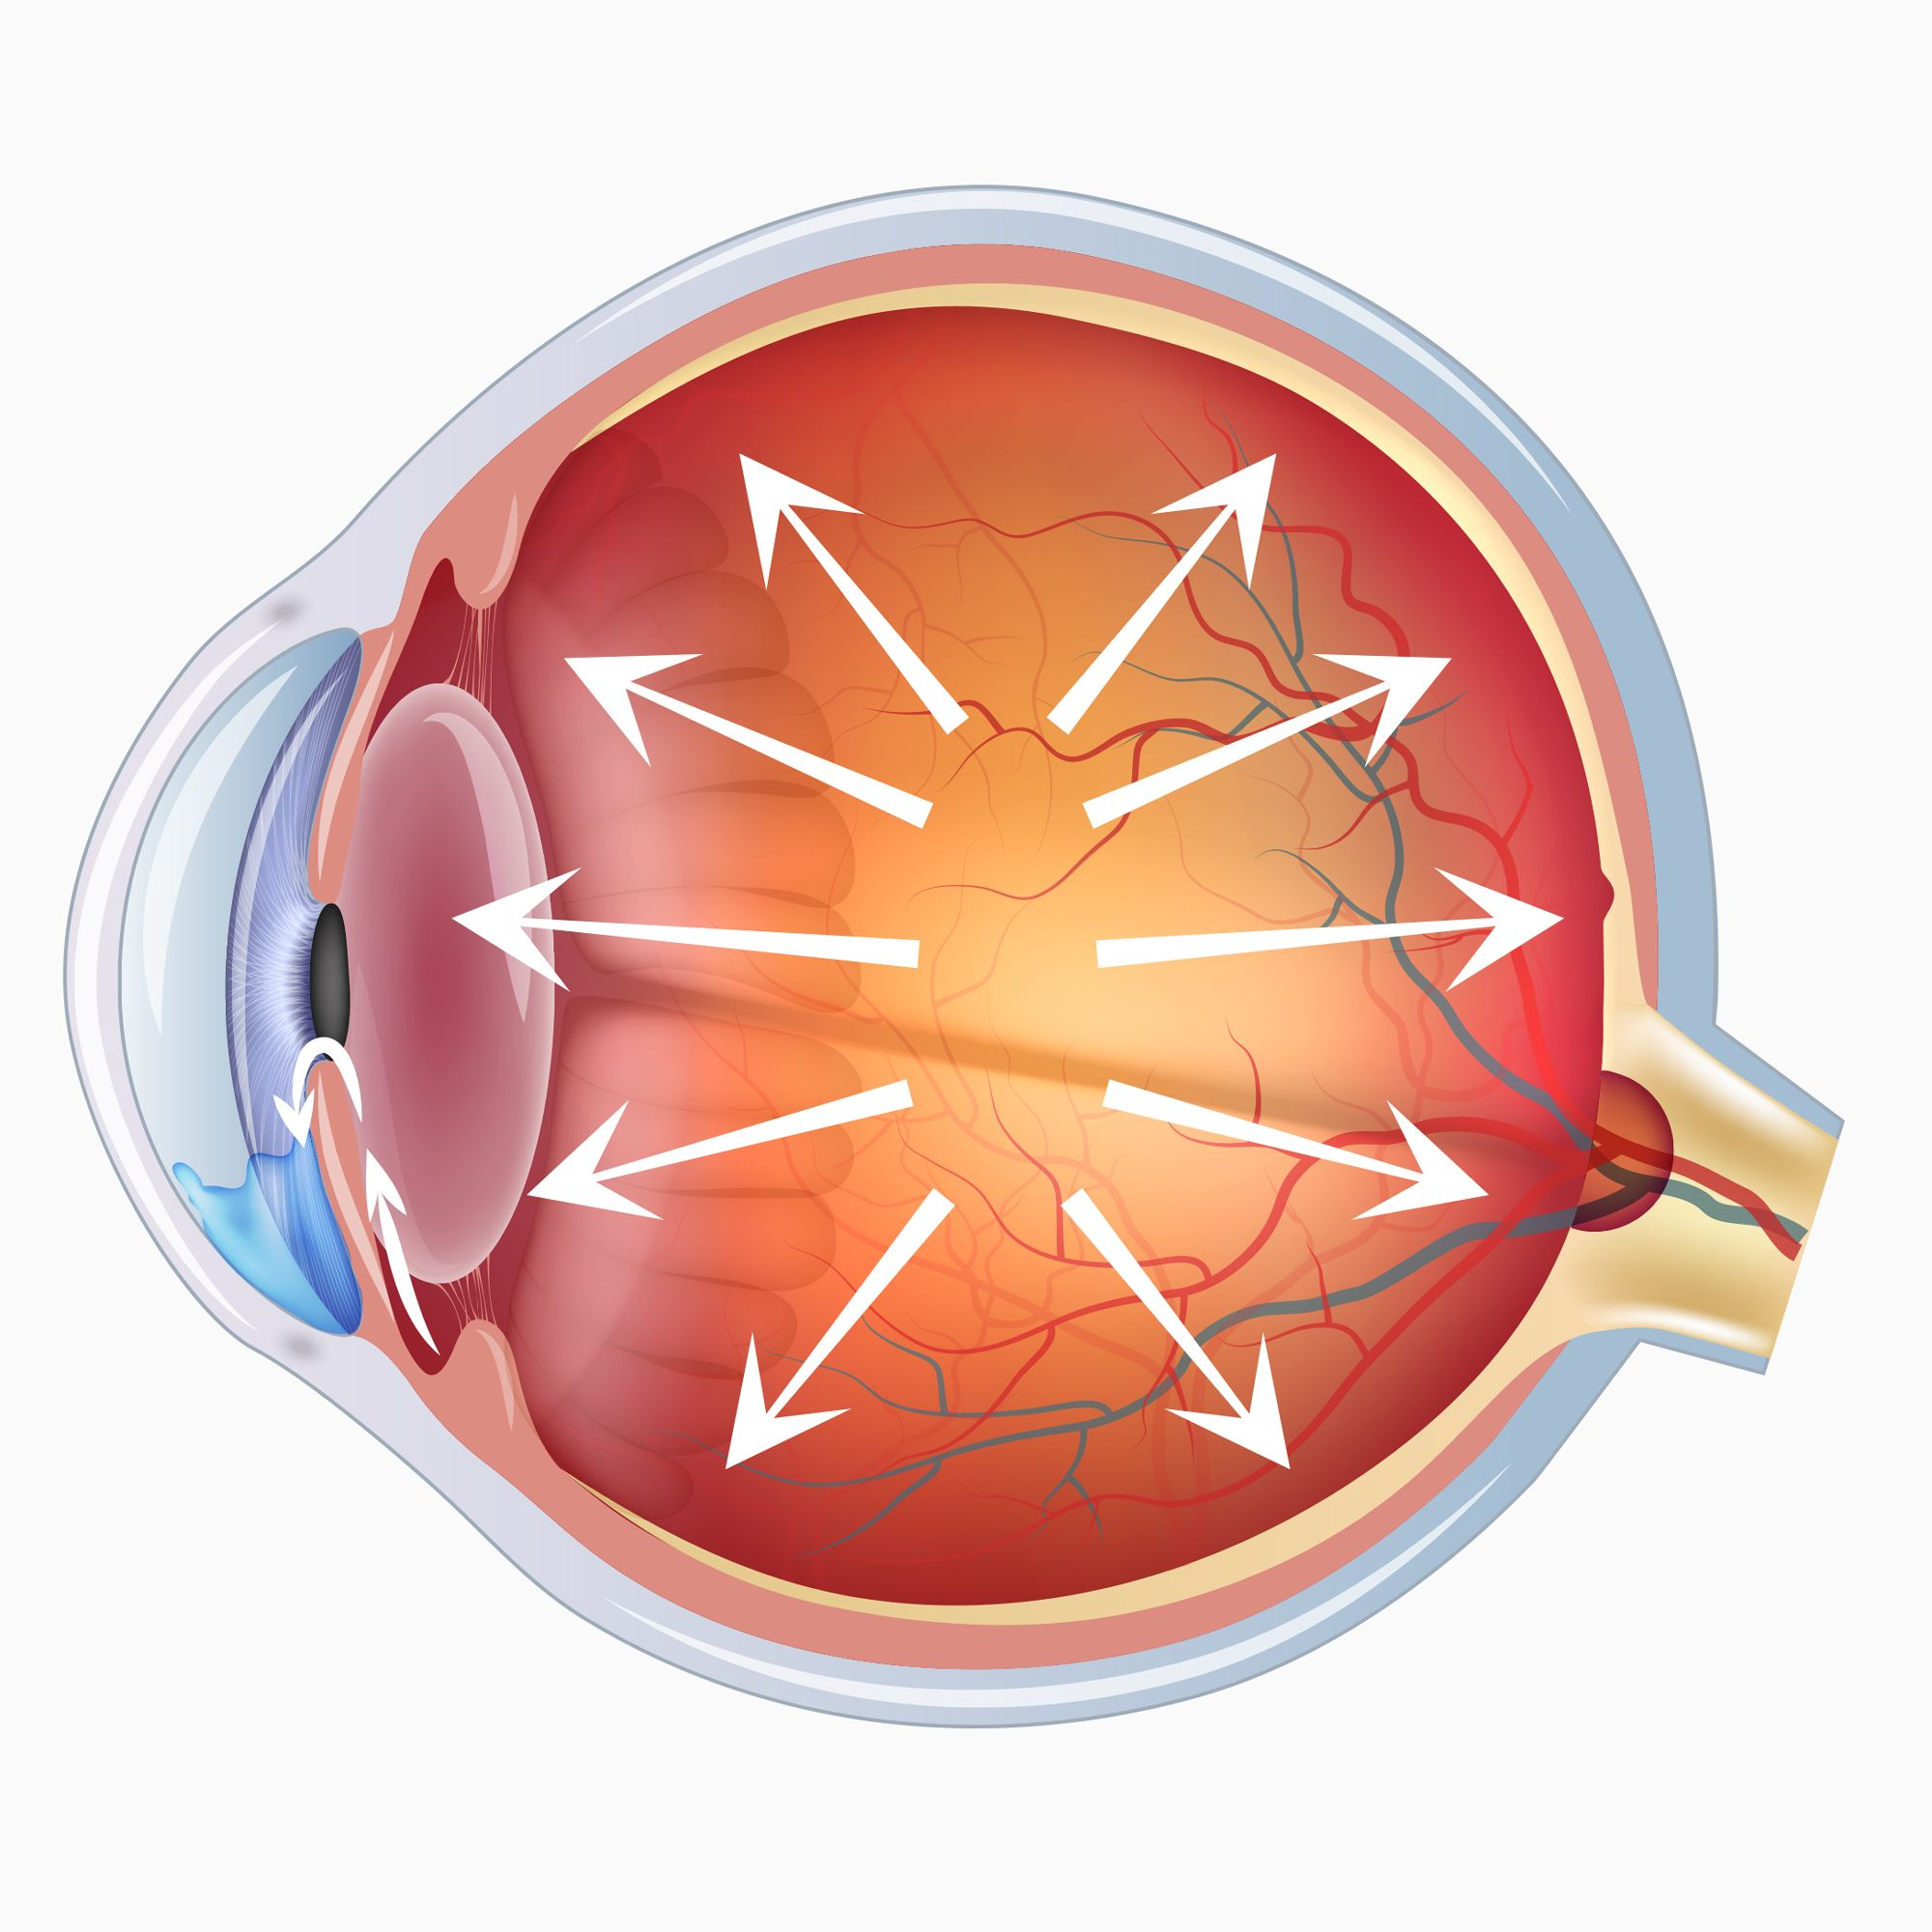 Illustration of an eye affected by glaucoma